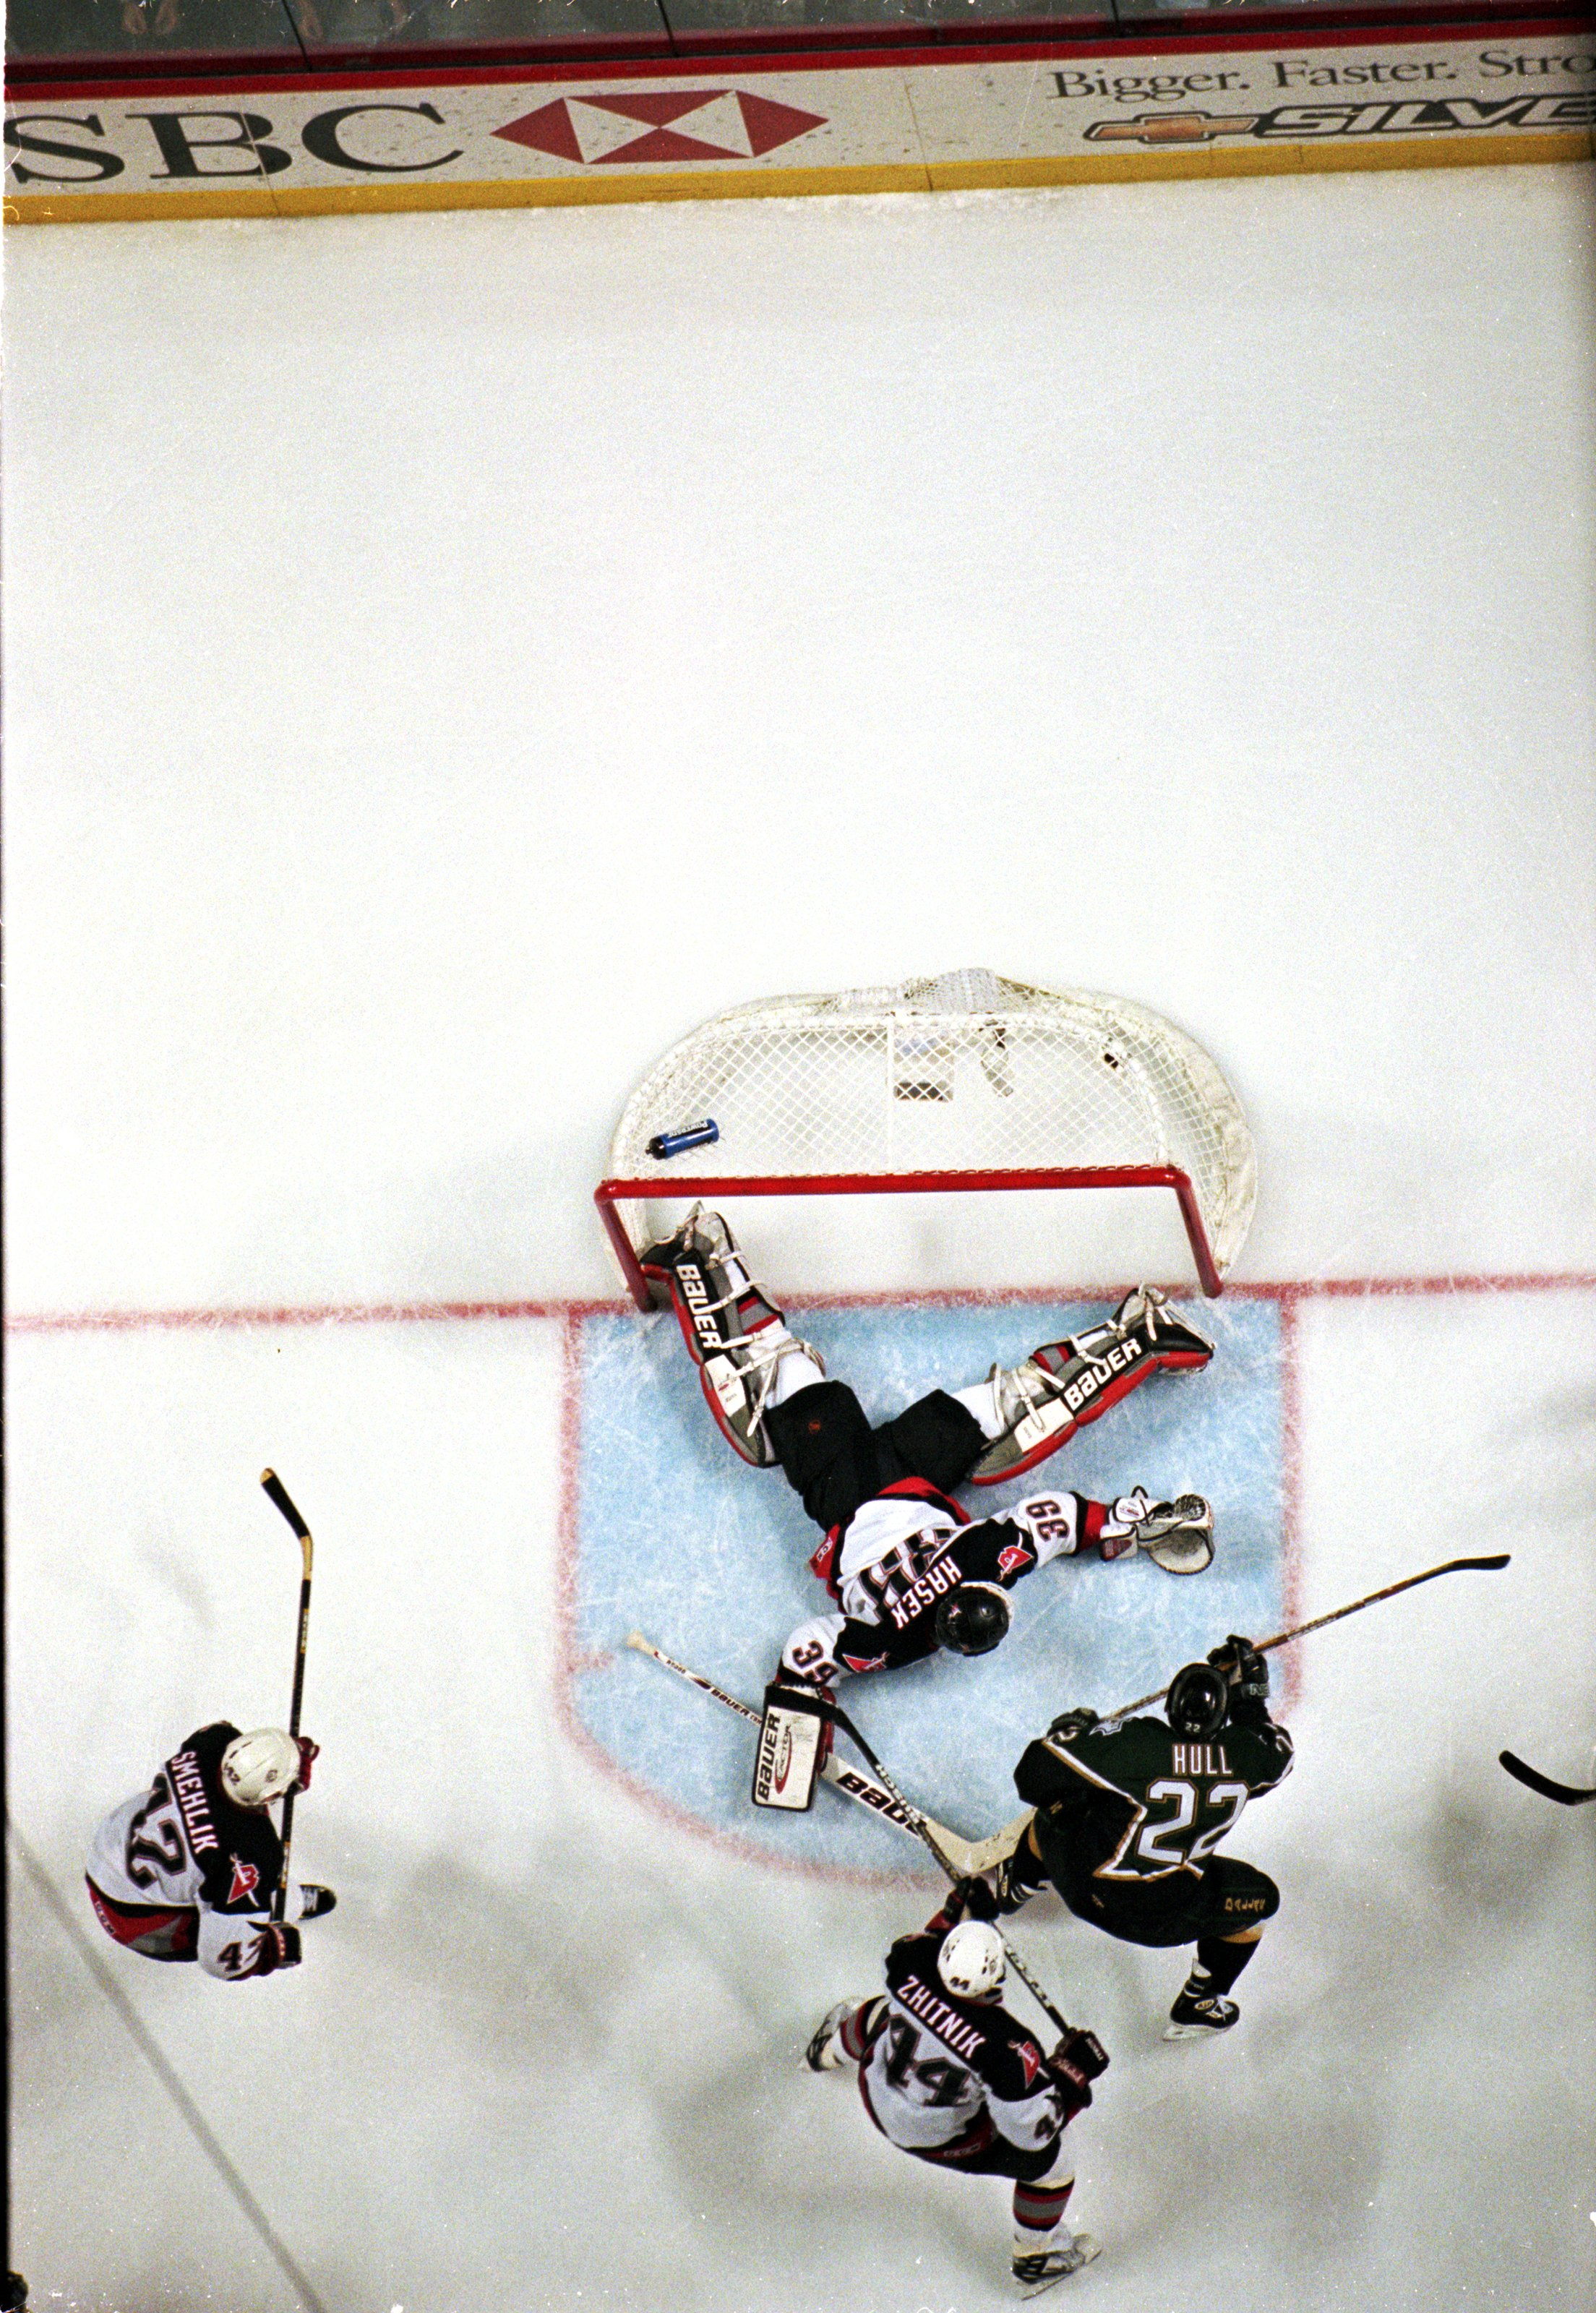 19 Jun 1999:  Goalie Dominik Hasek #39 of the Buffalo Sabres misses the final puck which was shot by Brett Hull #22 of the Dallas Stars during the Stanley Cup Finals game at the Marine Midland Arena in Buffalo, New York. The Dallas Stars defeated the Sabr